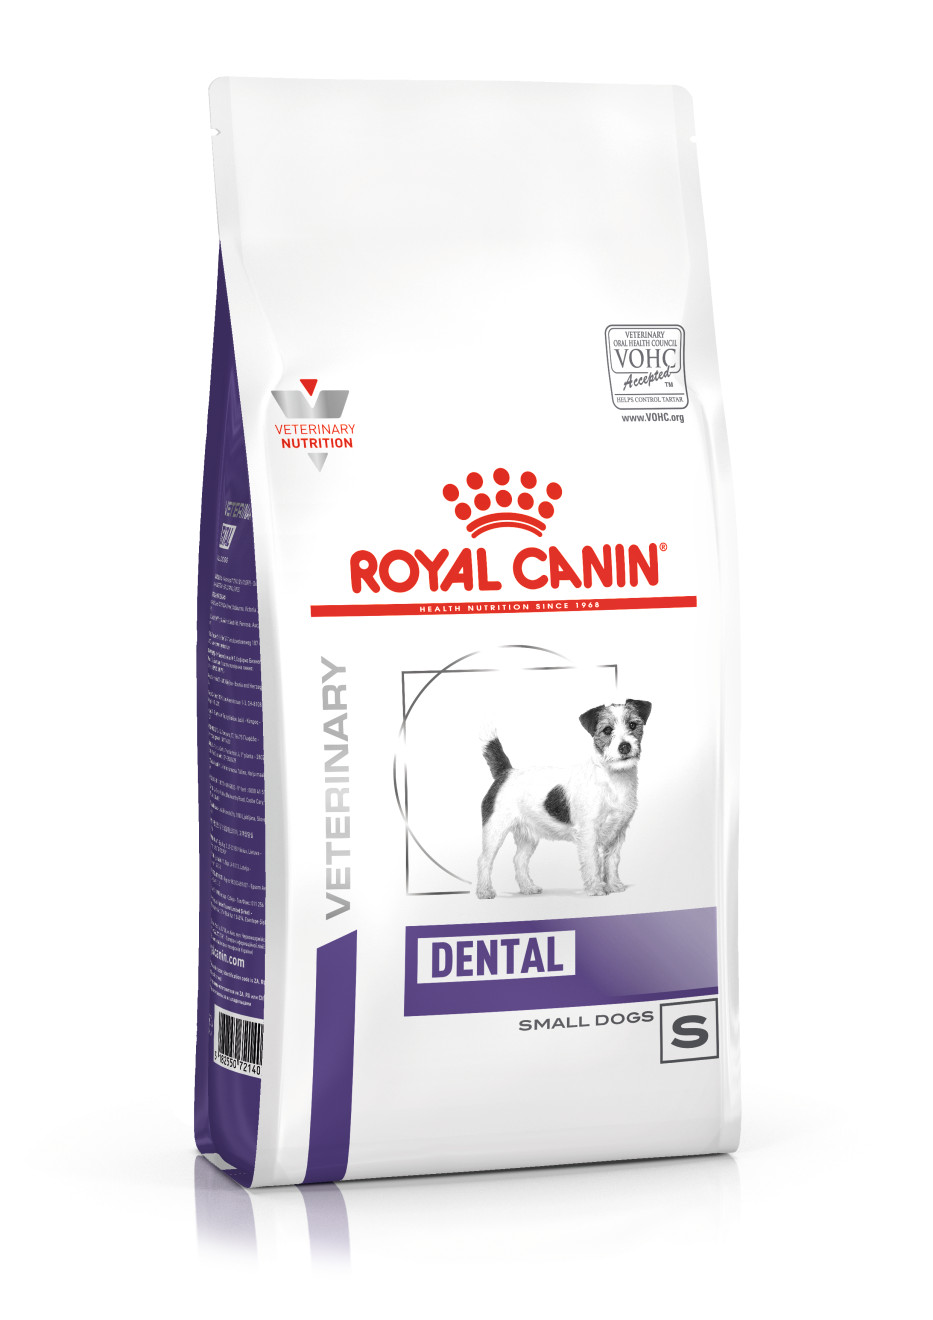 Royal Canin Veterinary Dental Small Dogs pour chien